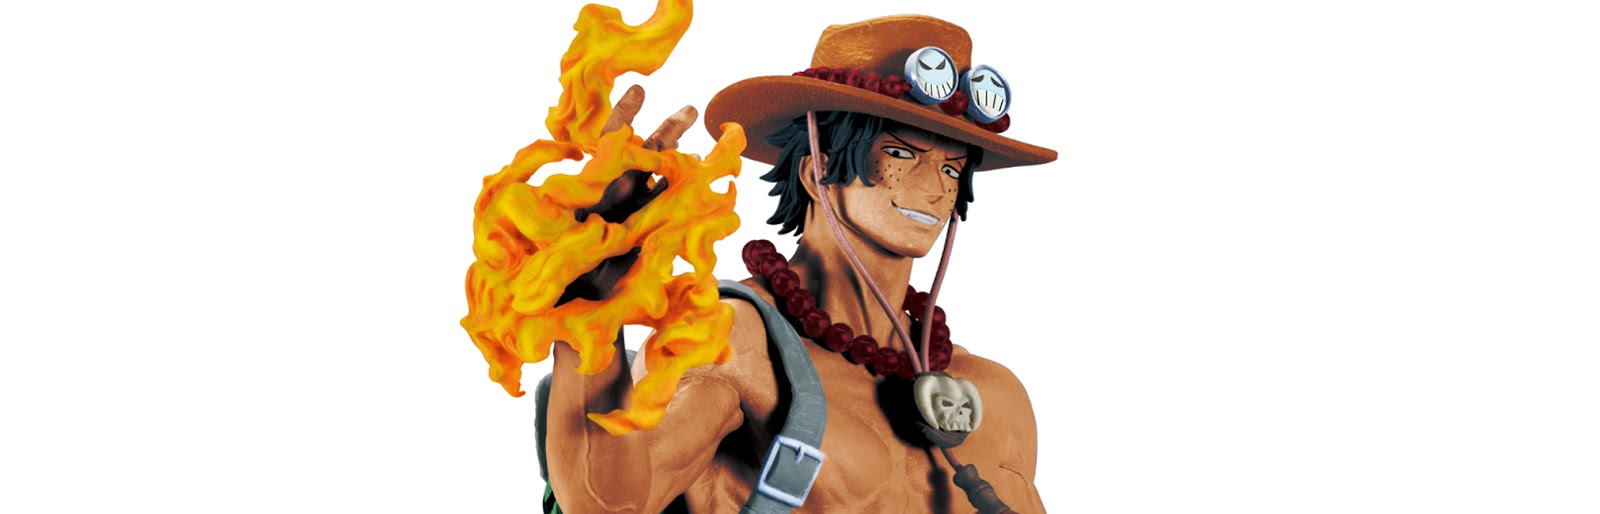 One Piece - Portgas D. Ace Big Size Figure (Banpresto)